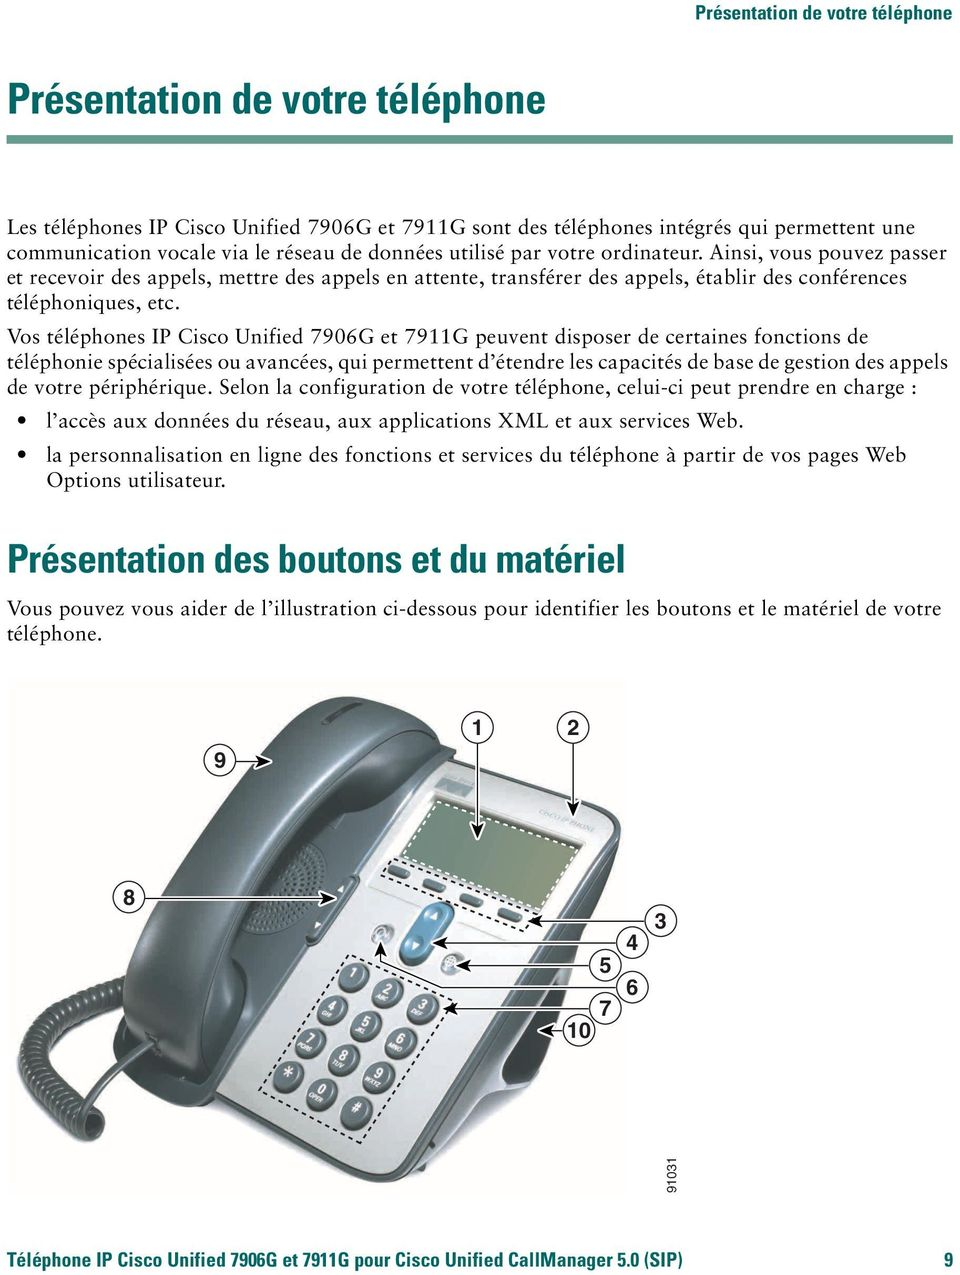 Téléphone IP Cisco Unified 7906G et 7911G pour Cisco Unified